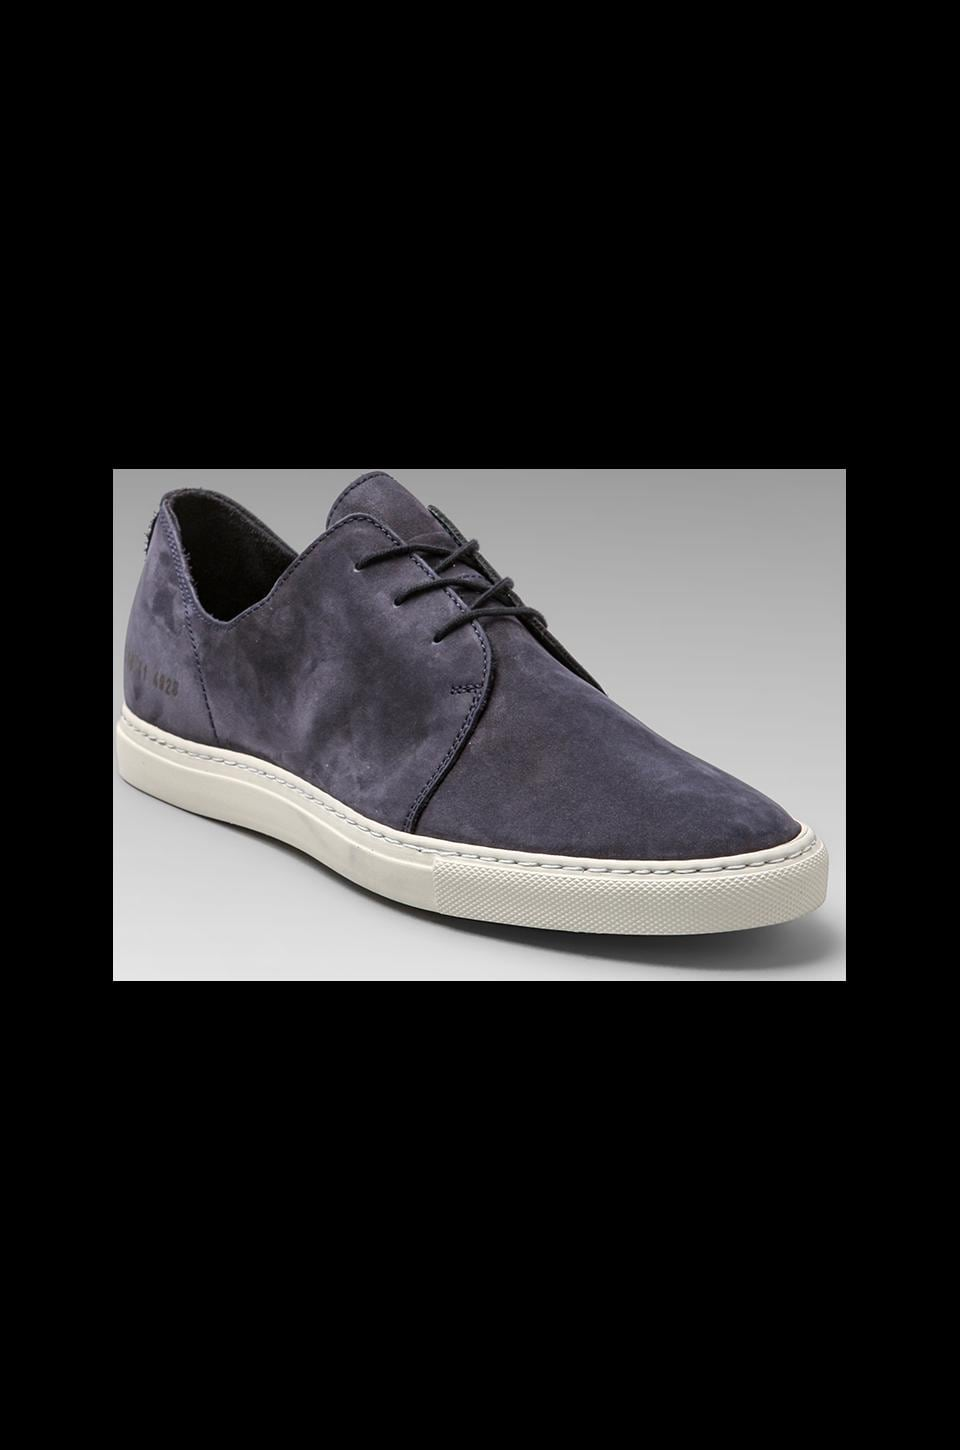 Common Projects Rec in Nubuck in Navy